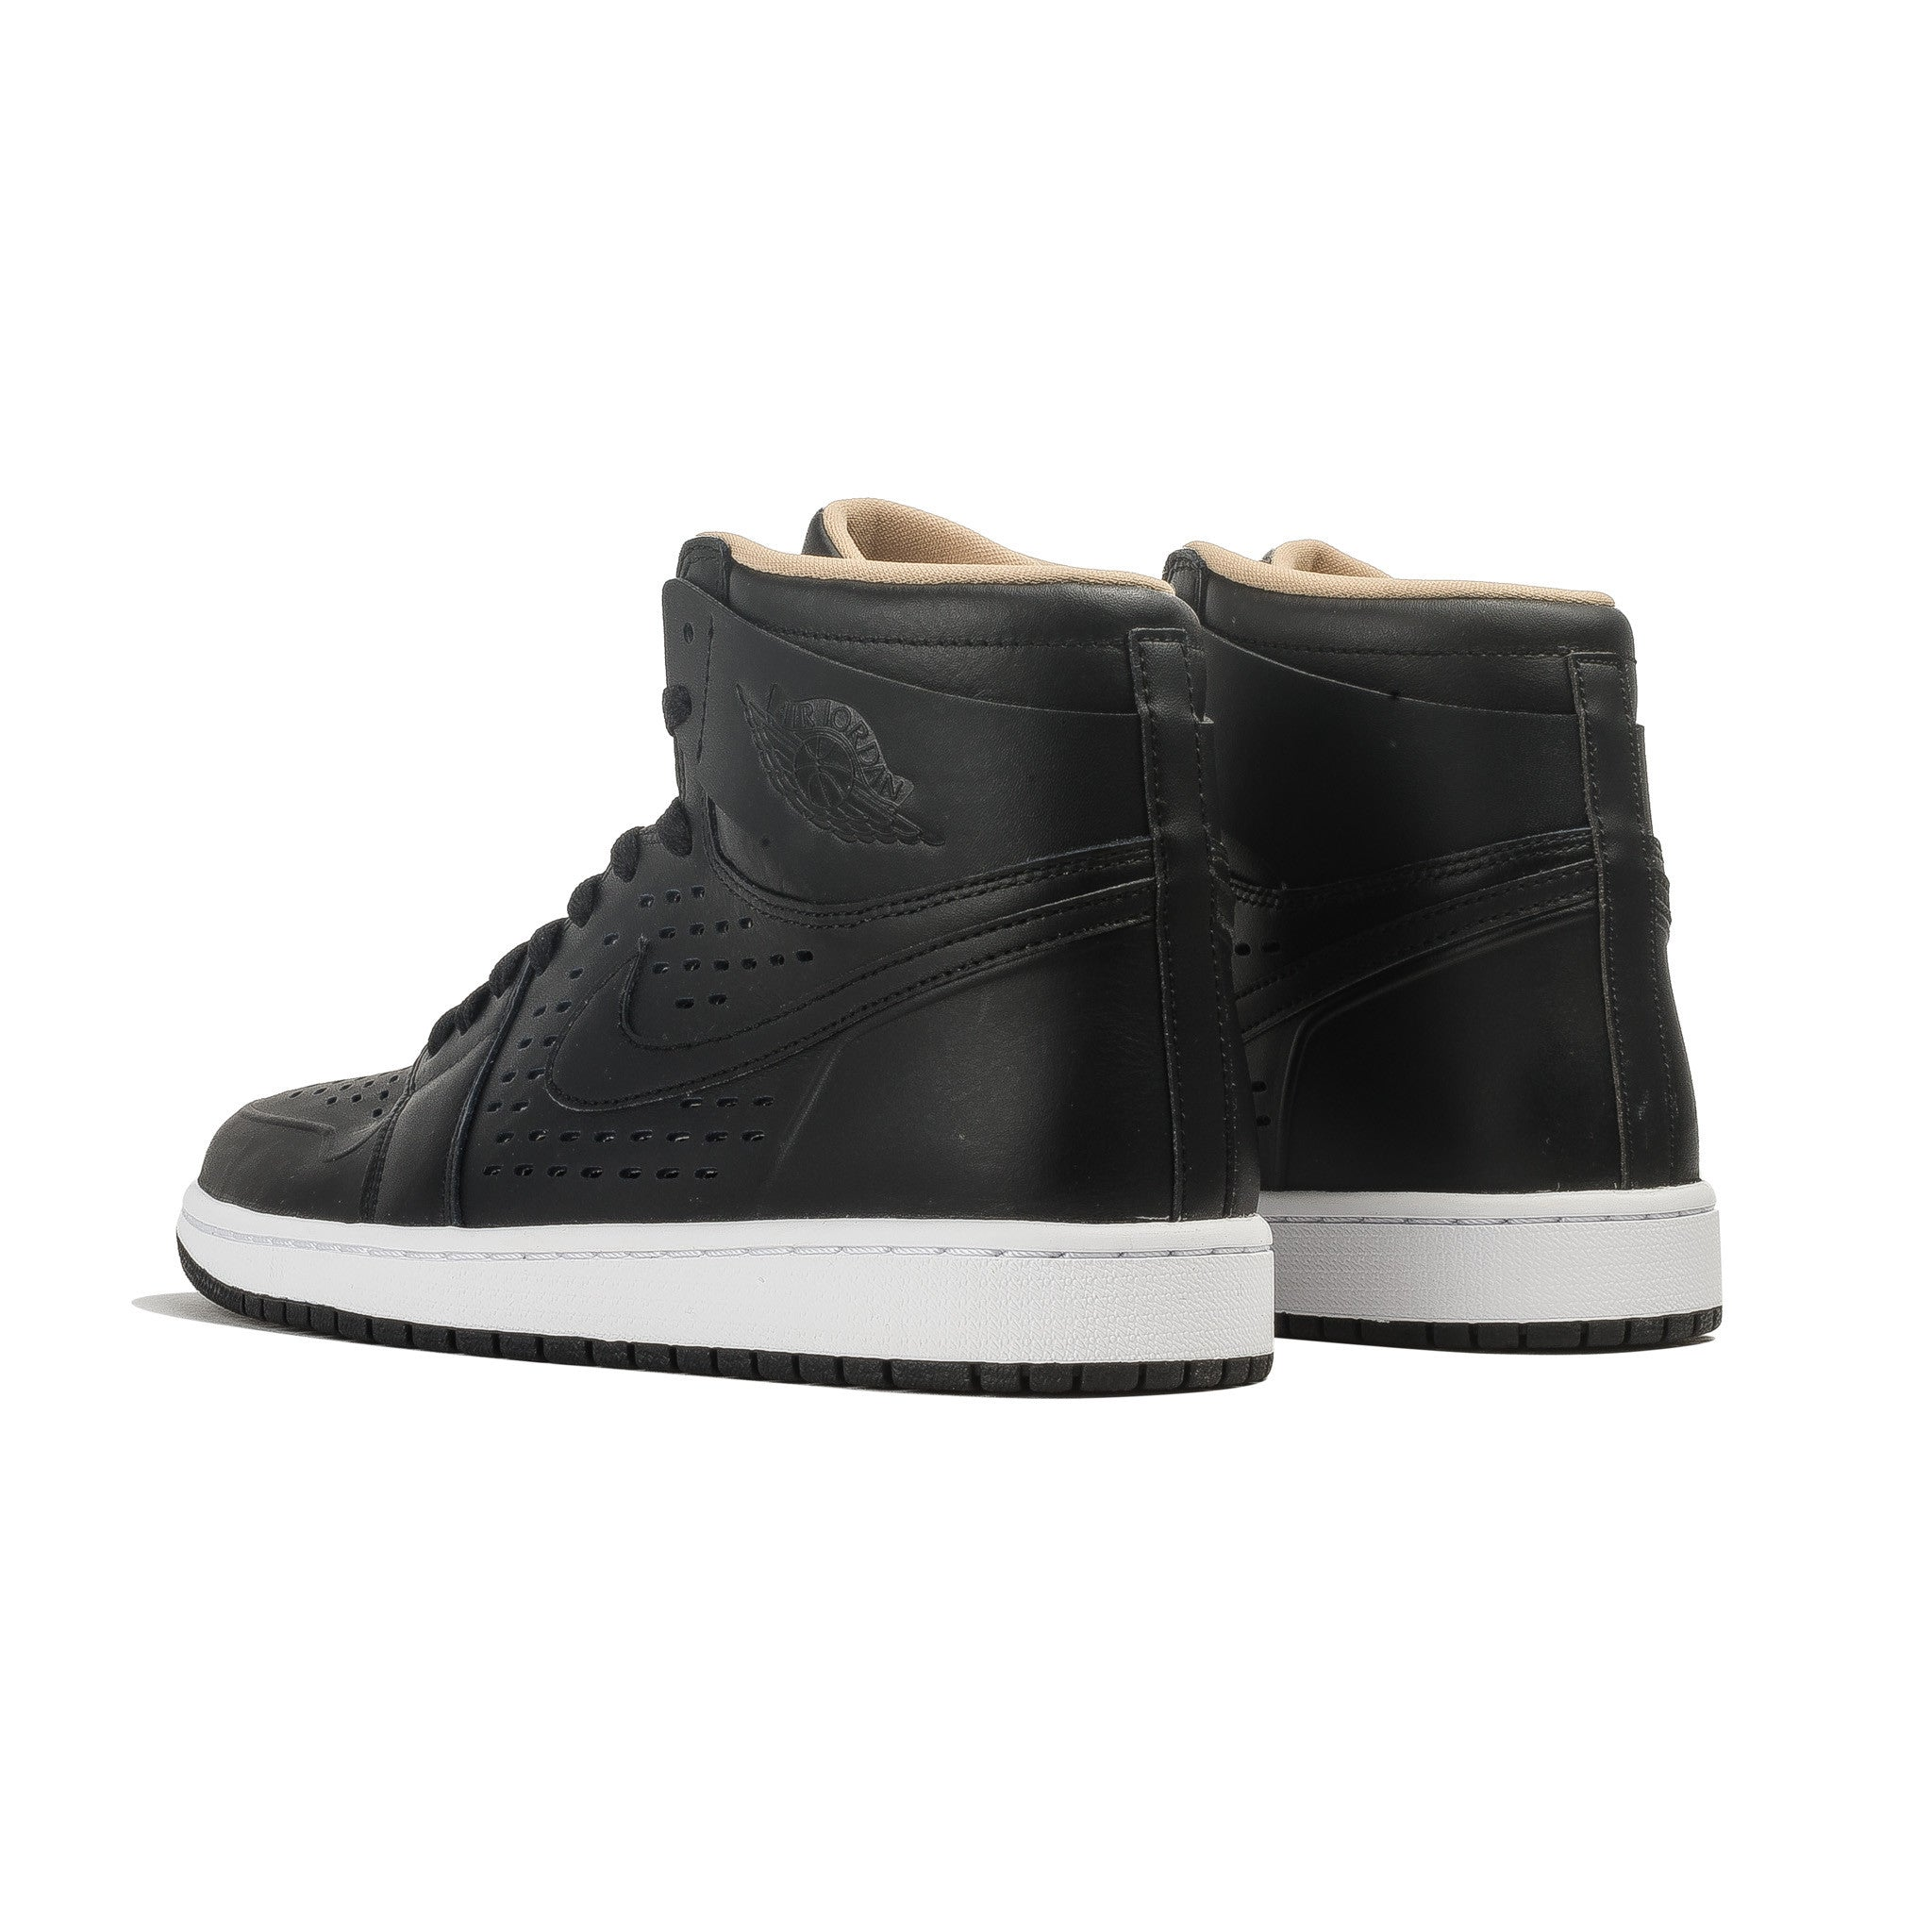 Air Jordan 1 Retro High 845018-030 Black